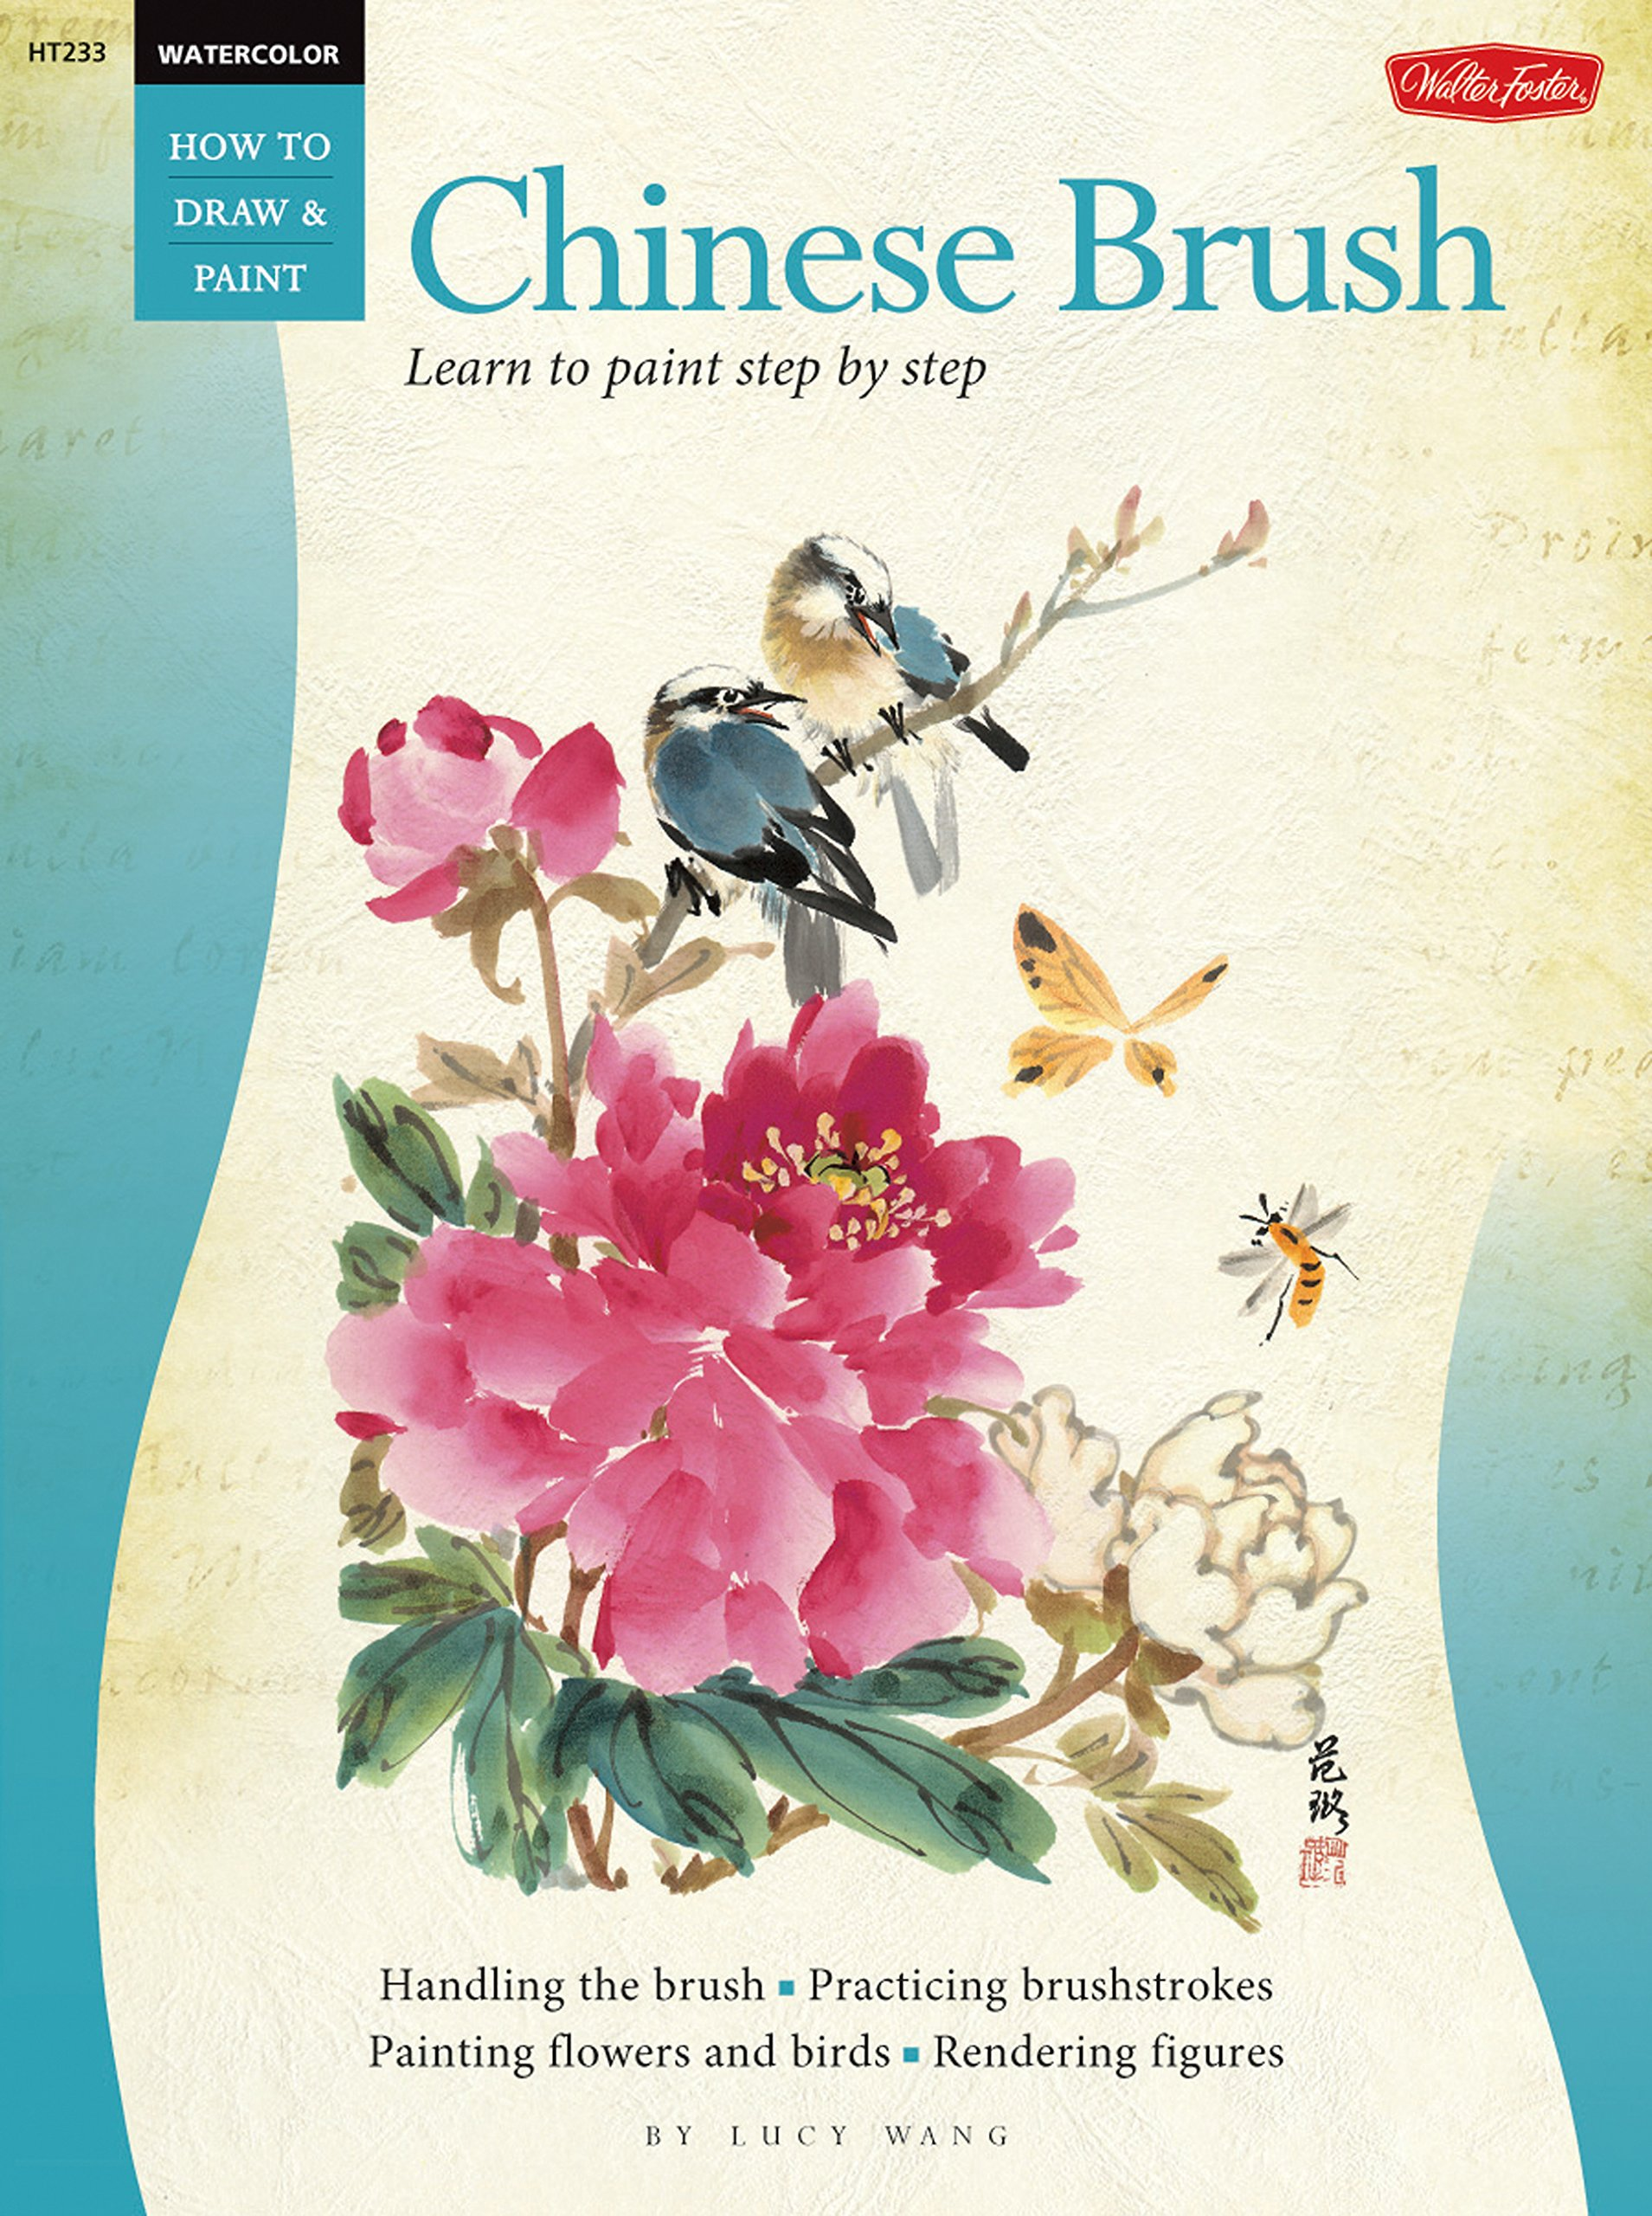 Watercolor: Chinese Brush (How to Draw & Paint): Lucy Wang: 9781560101666:  Amazon.com: Books